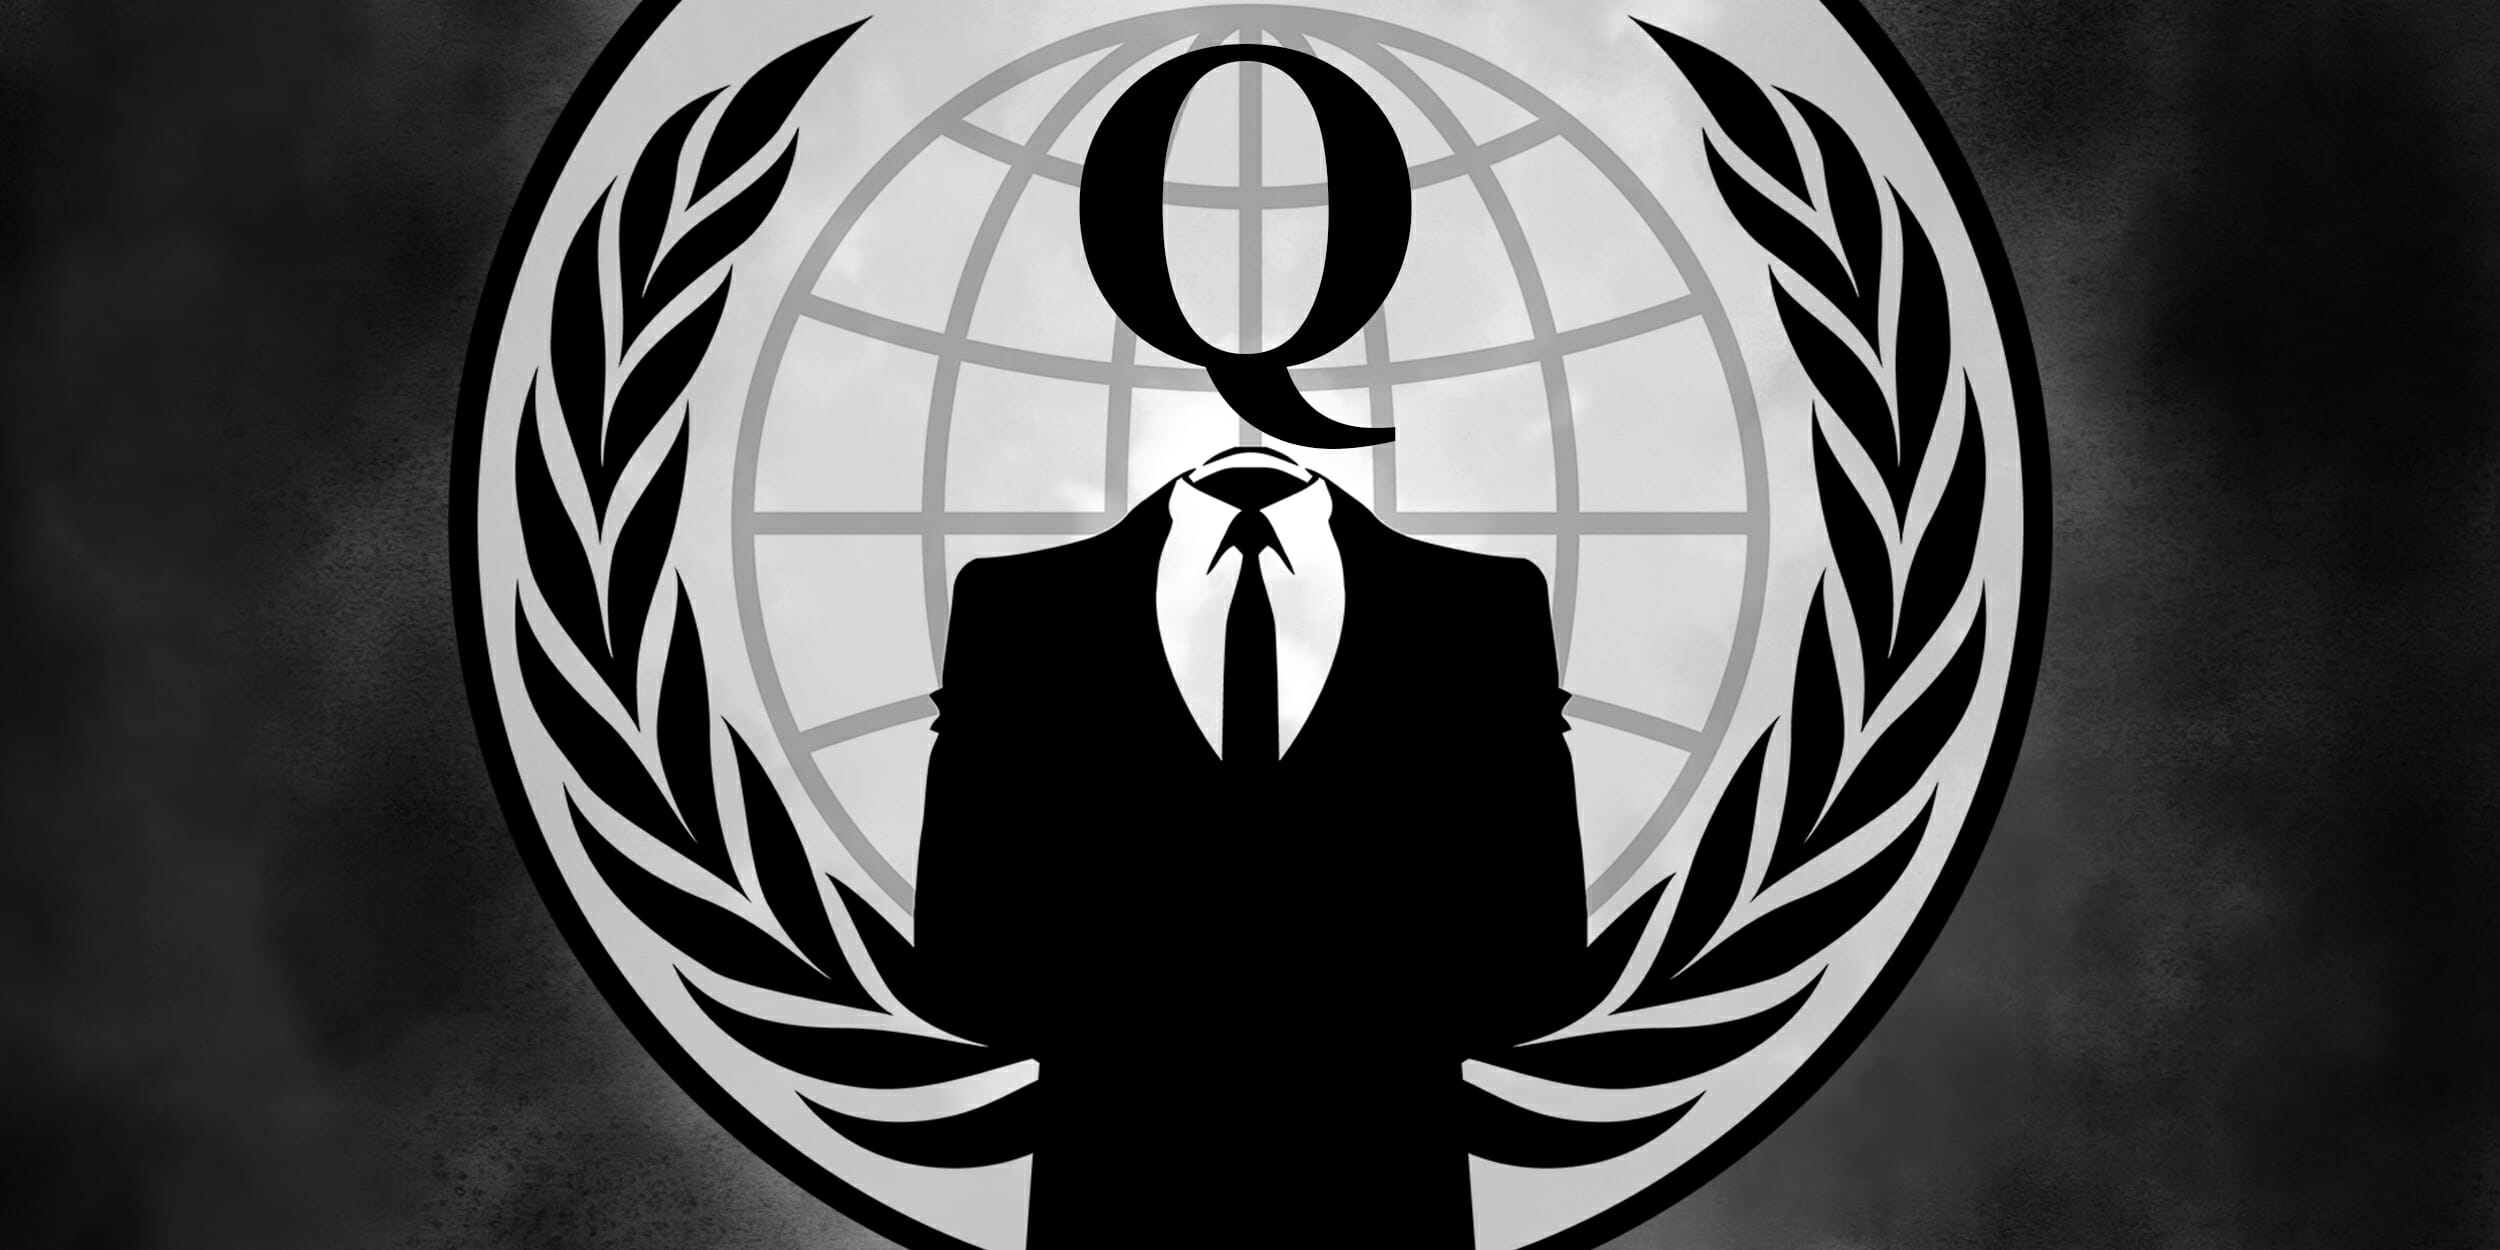 Who is Q Anon, the Internet's Most Mysterious Poster?